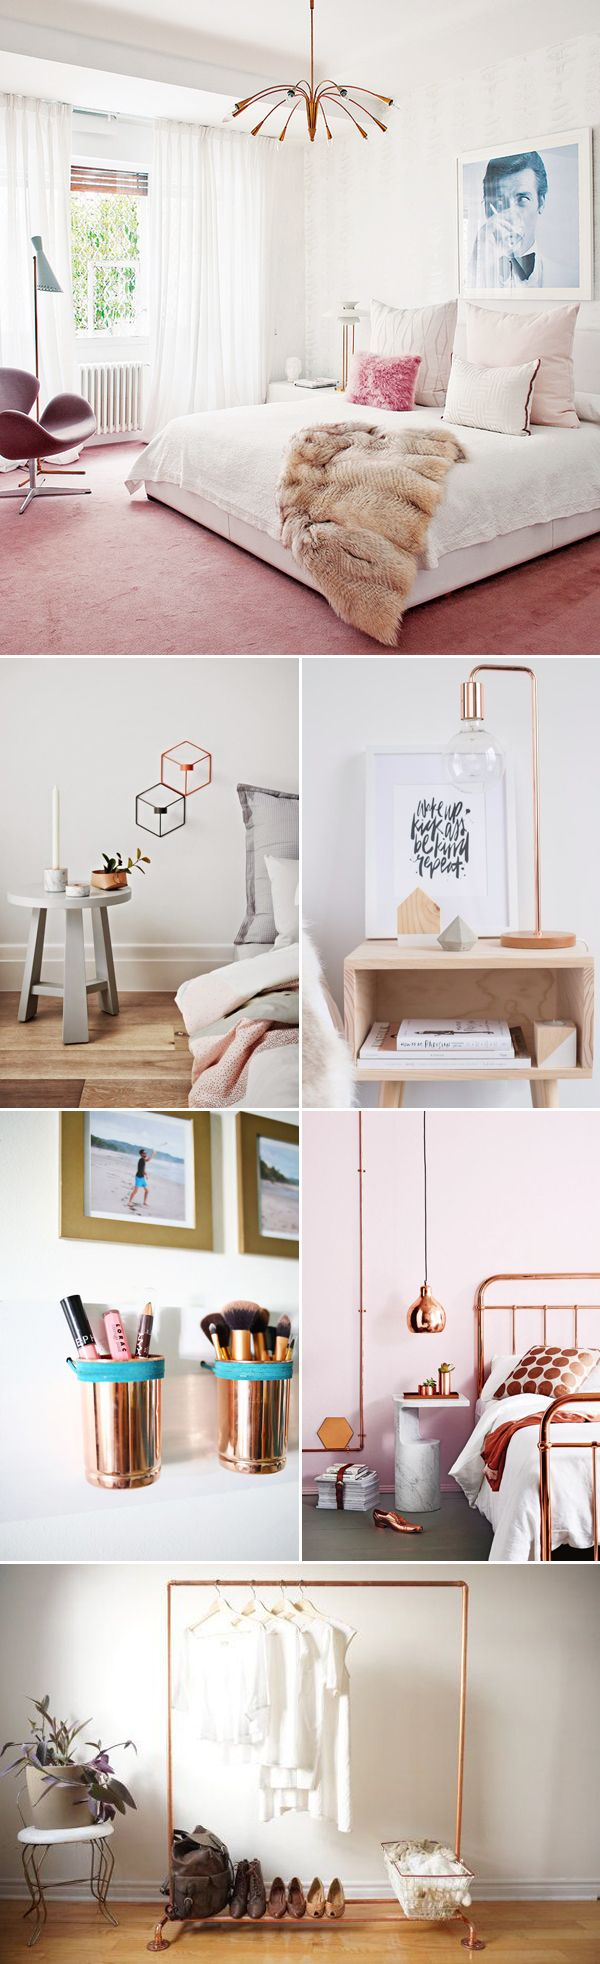 best decor inspiration images on pinterest sweet home my house